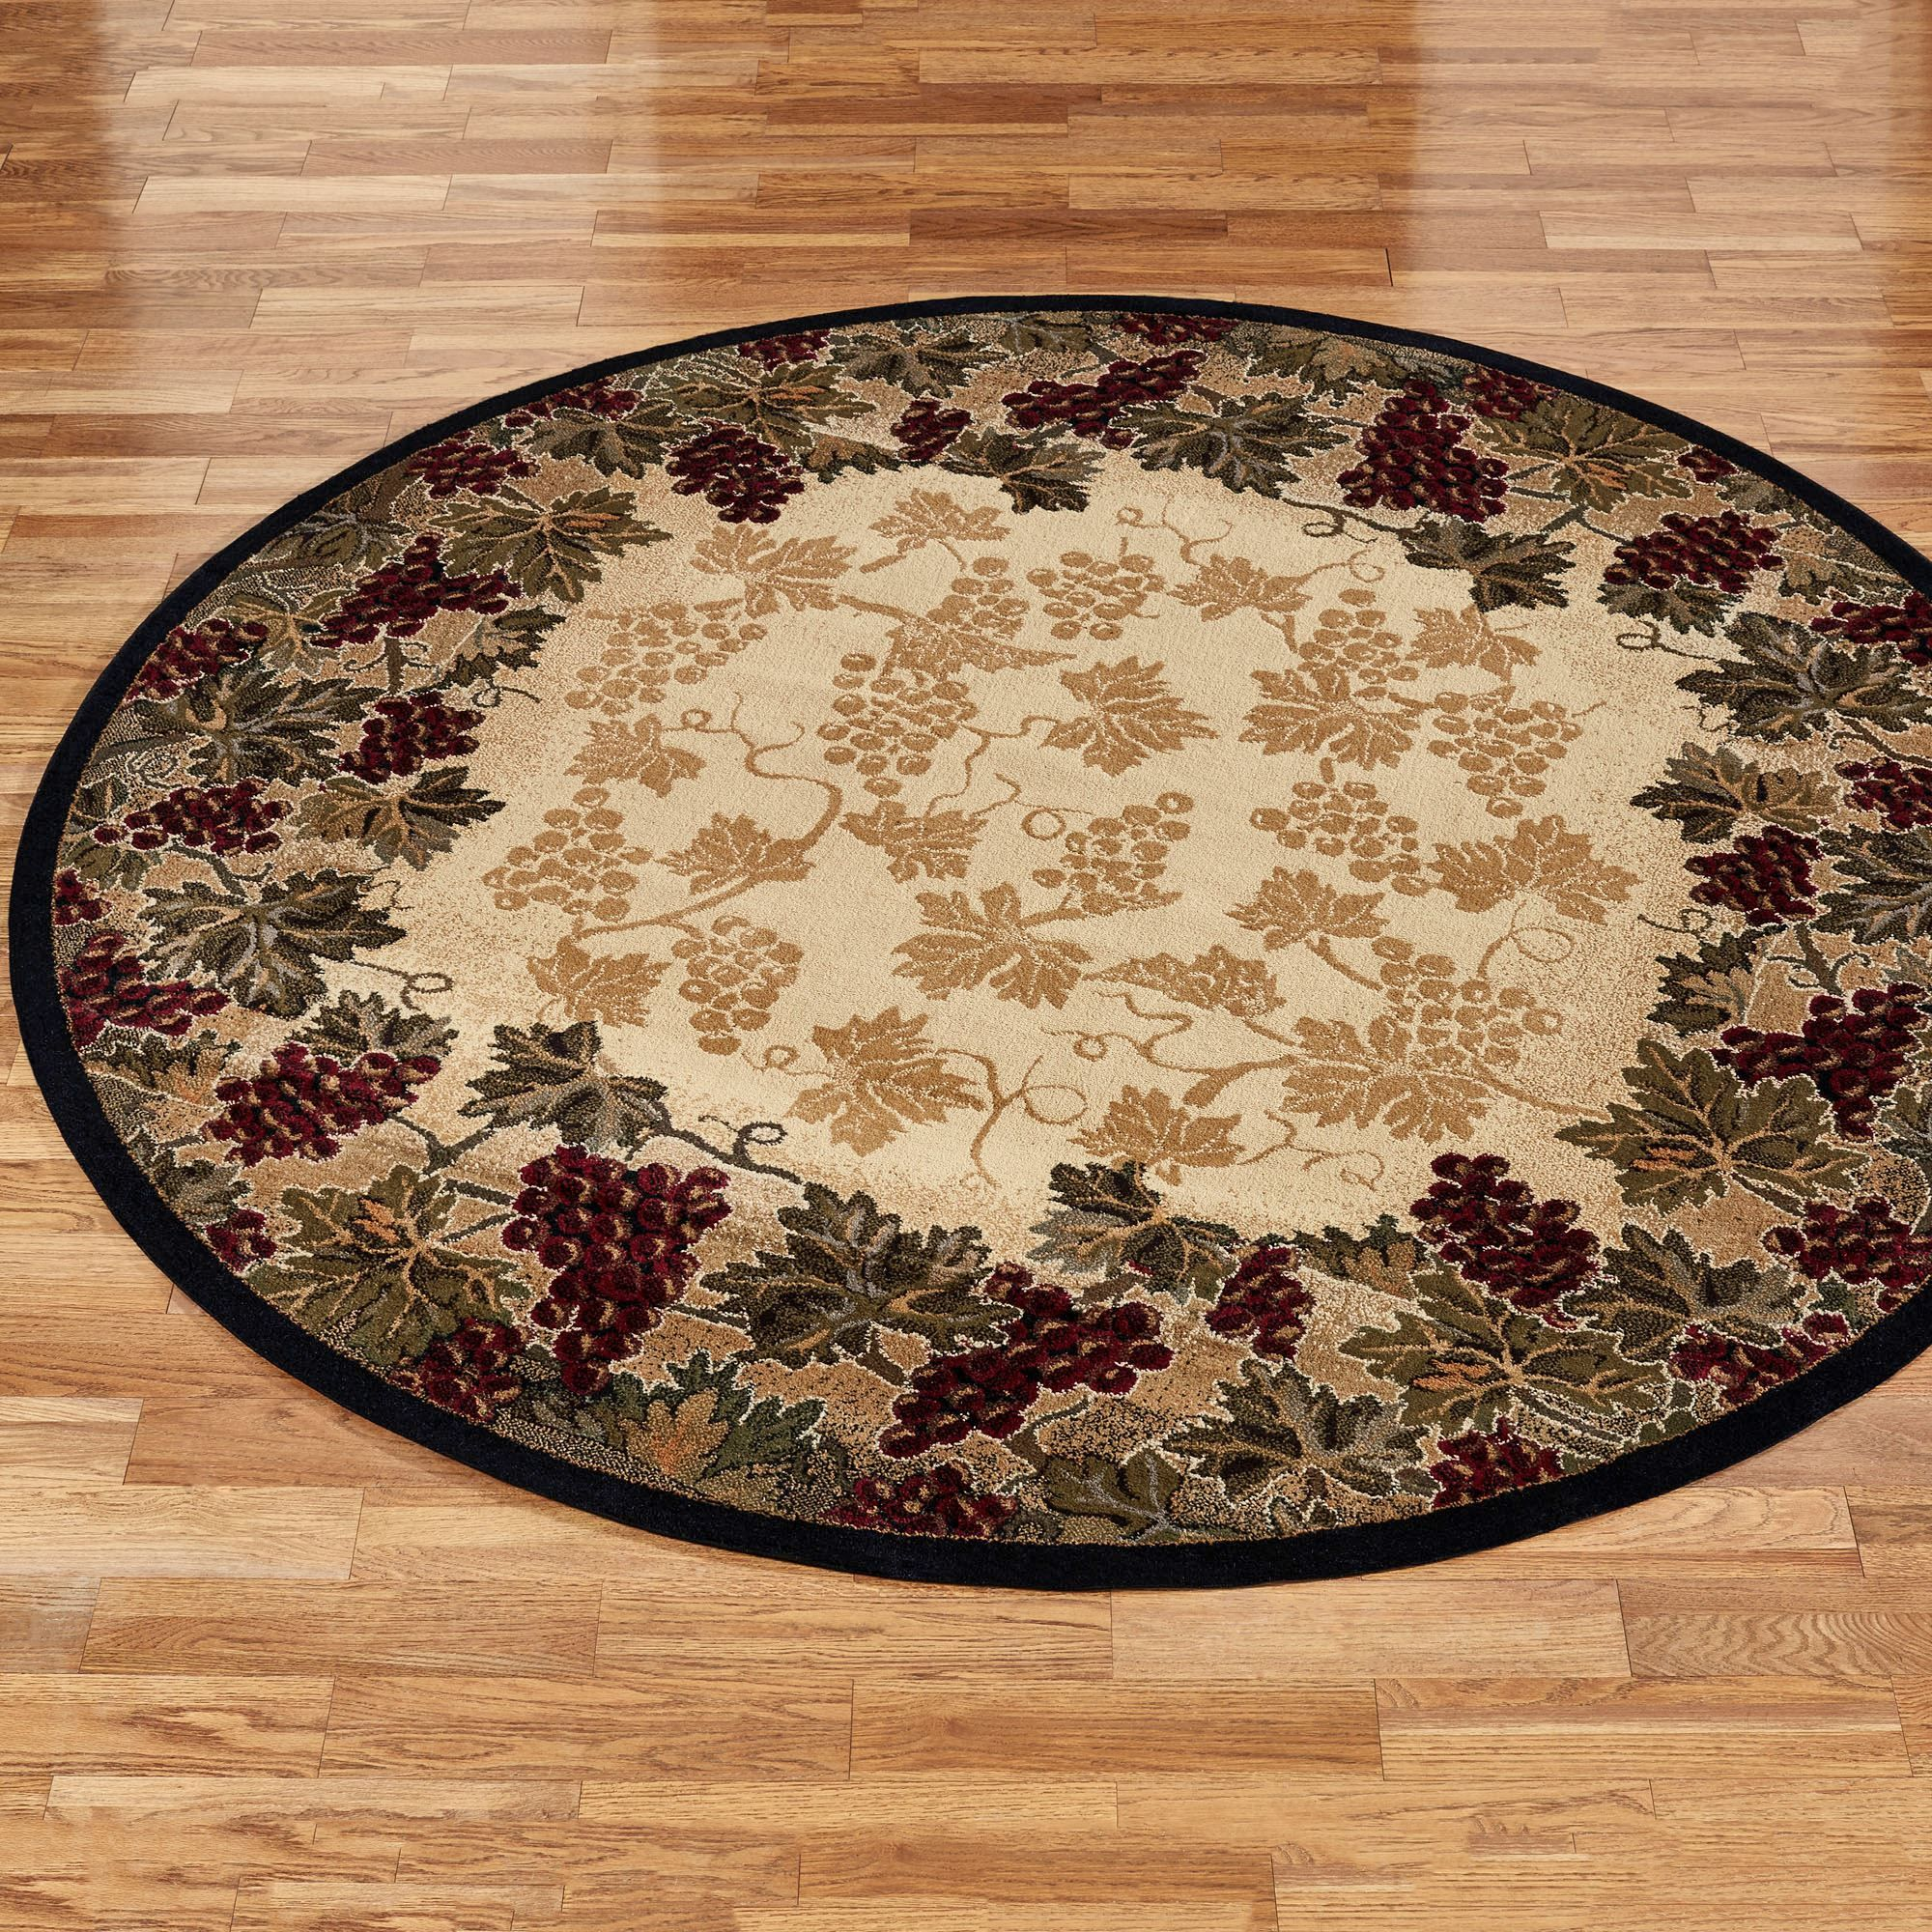 Beaujolais Ii Grape Round Rug Area Rug Decor Round Area Rugs Round Rugs